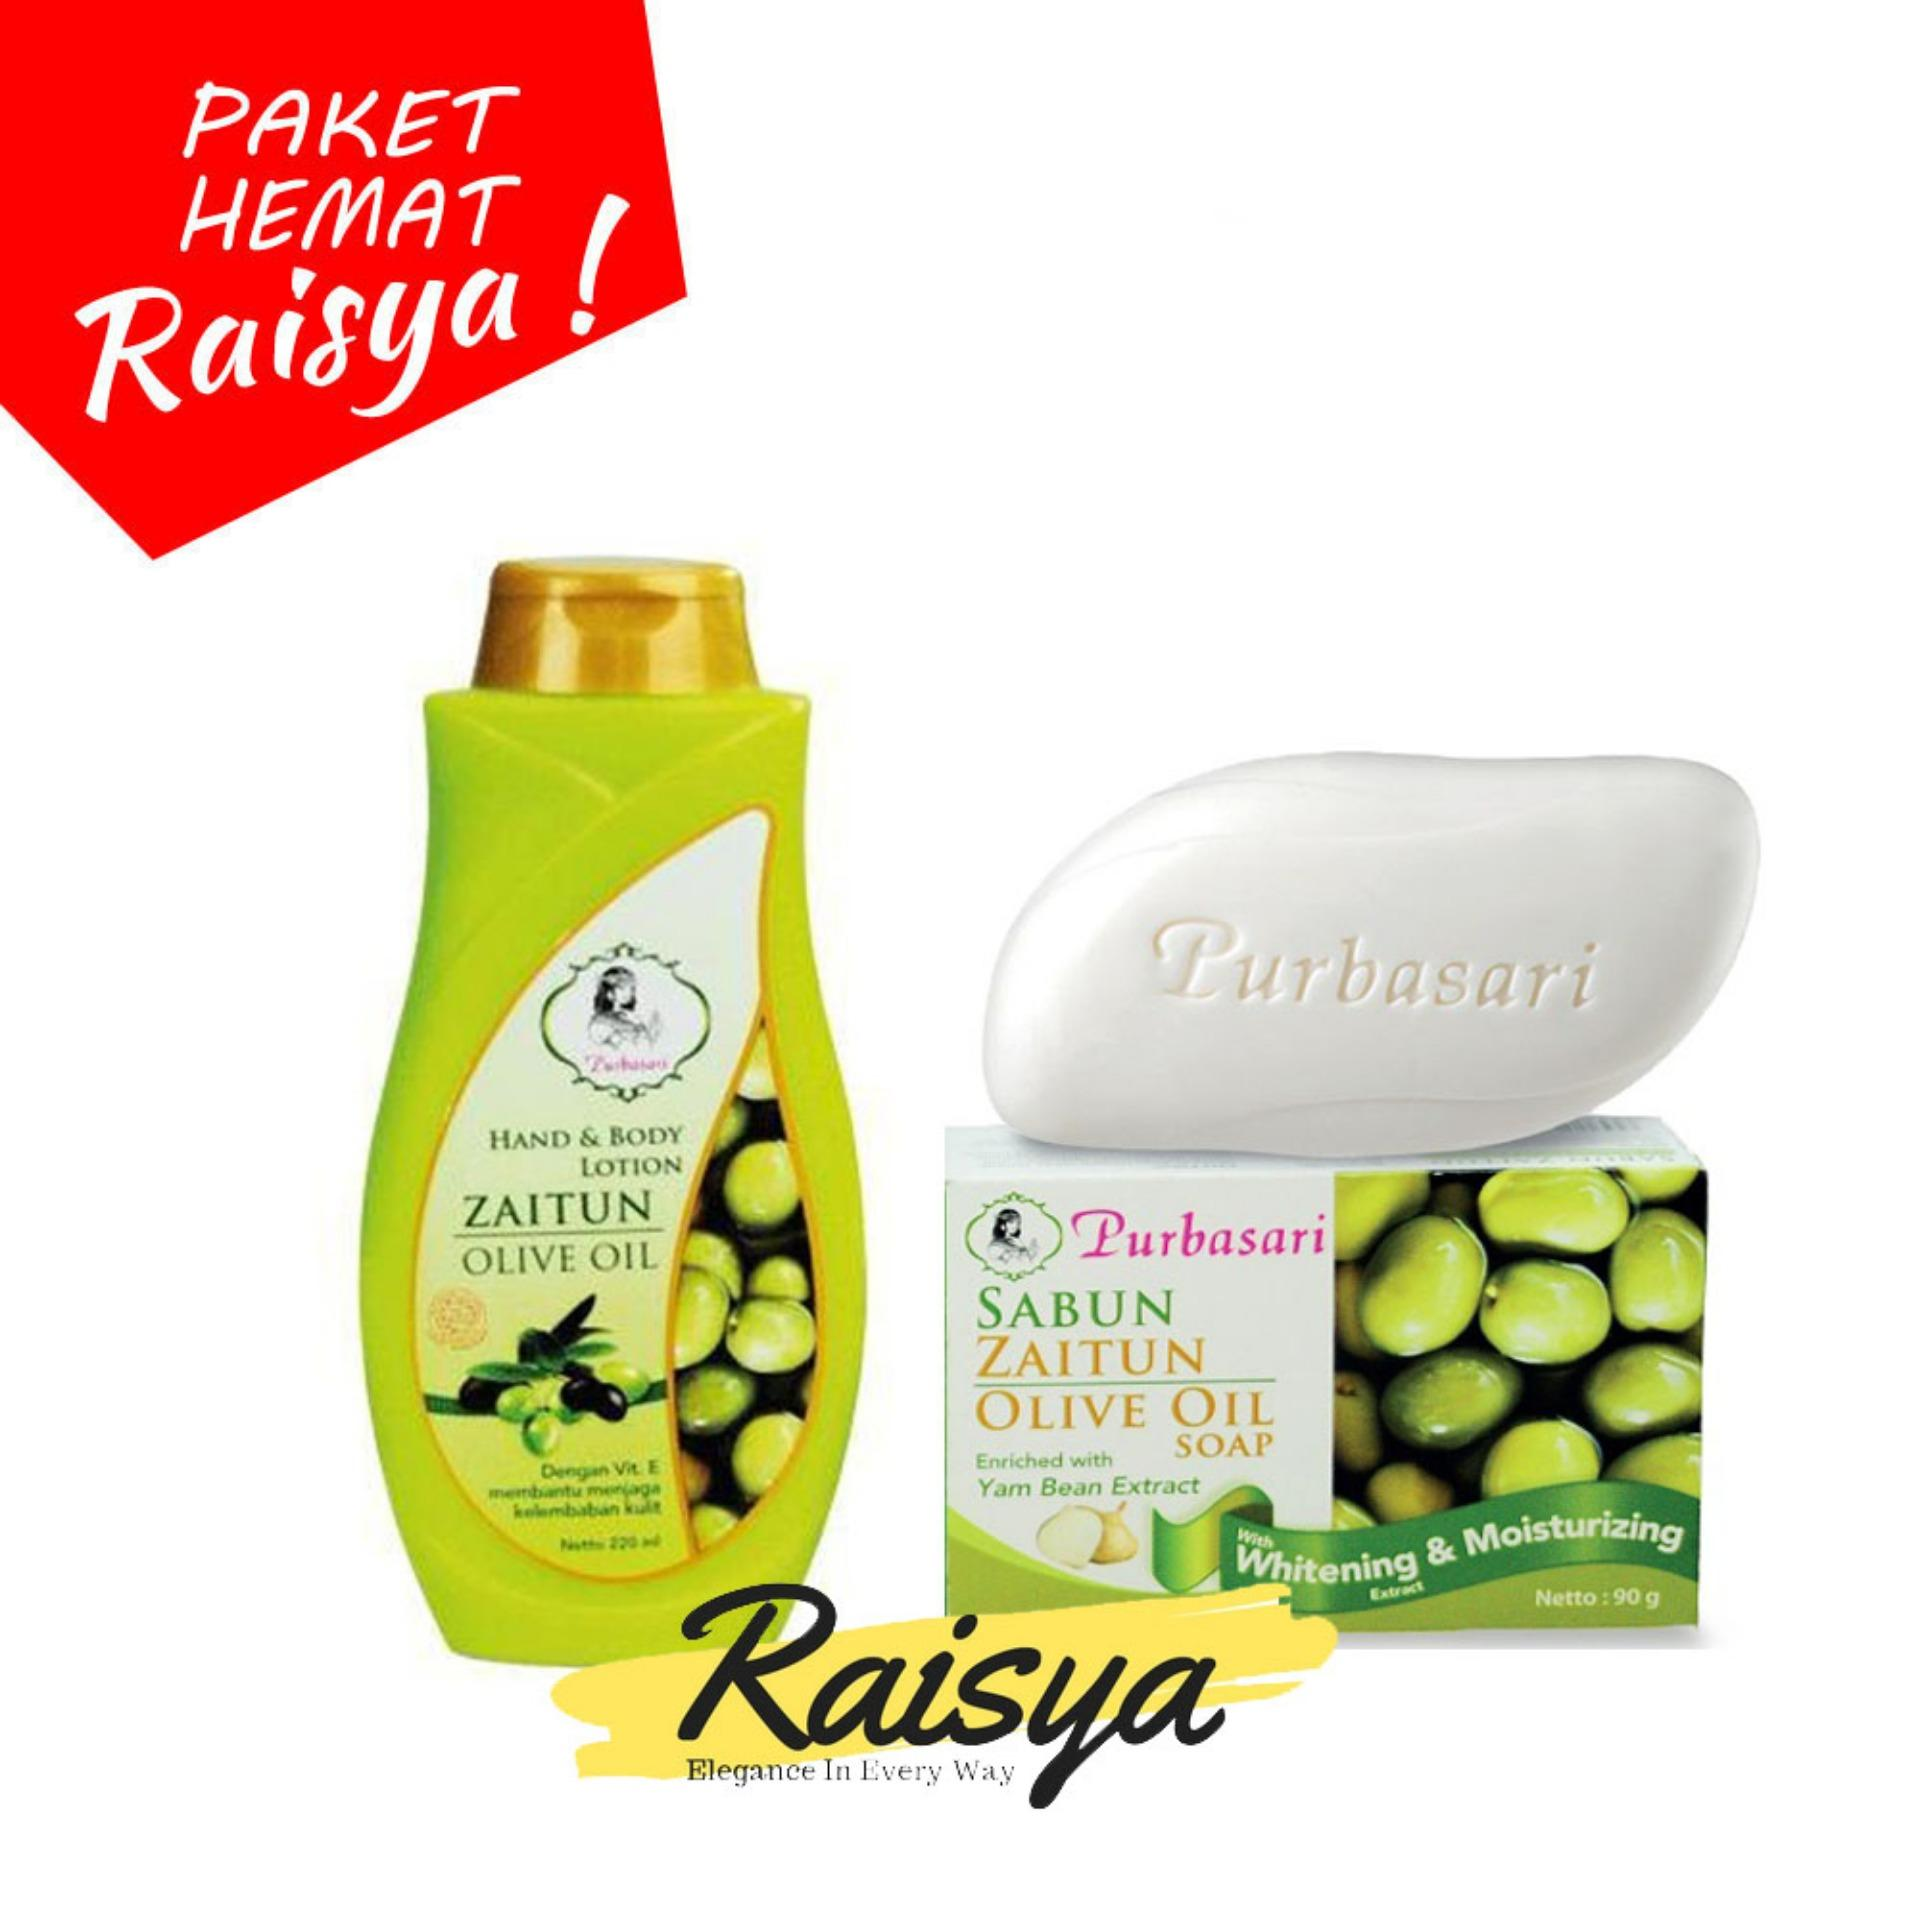 Purbasari Hand and Body Lotion + Sabun - Zaitun Olive Oil